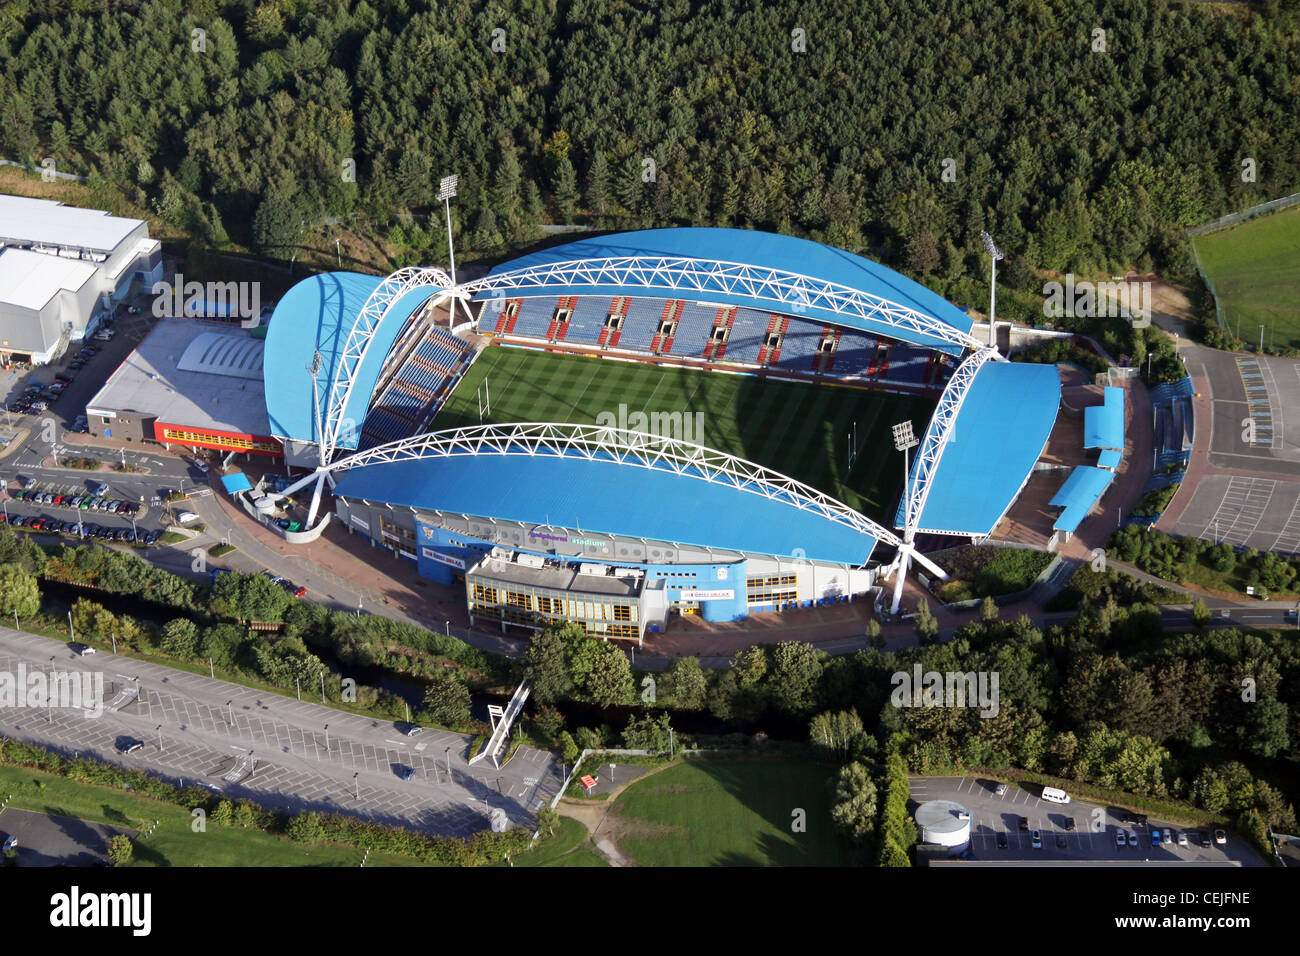 Aerial image of the John Smith's Stadium, formerly  the Galpharm Stadium, home of Huddersfield Town FC & - Stock Image